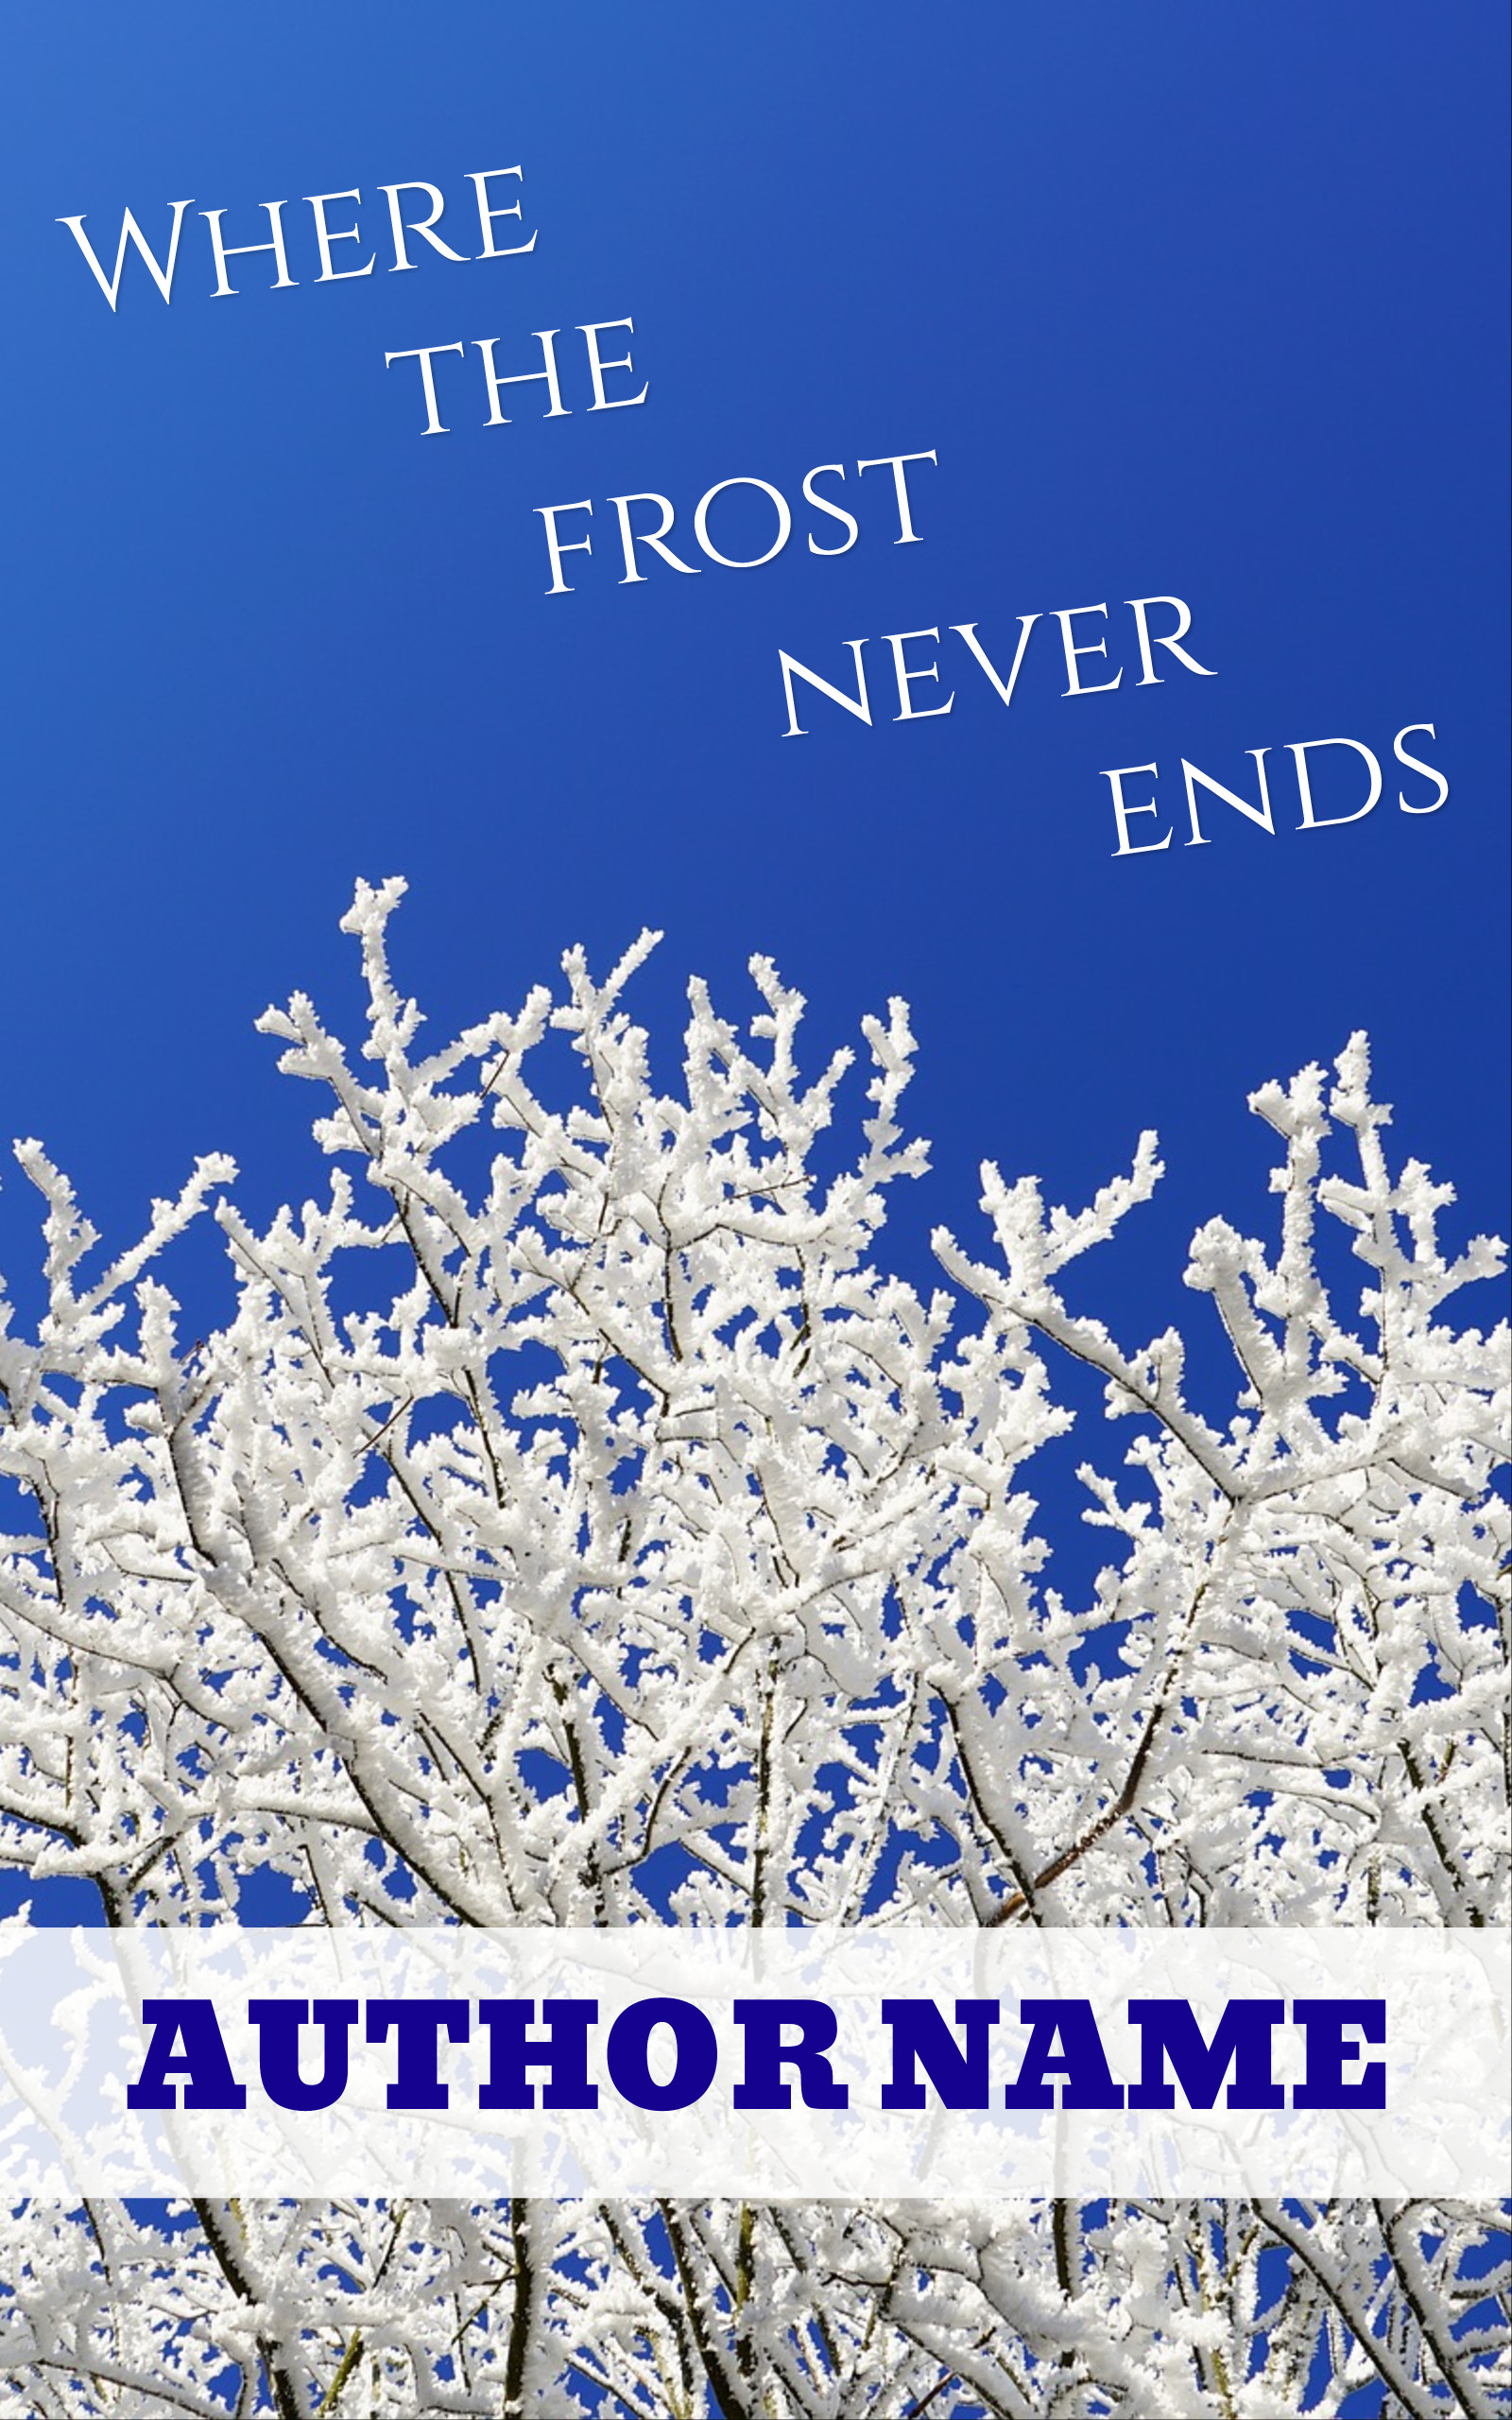 Where the frost never ends